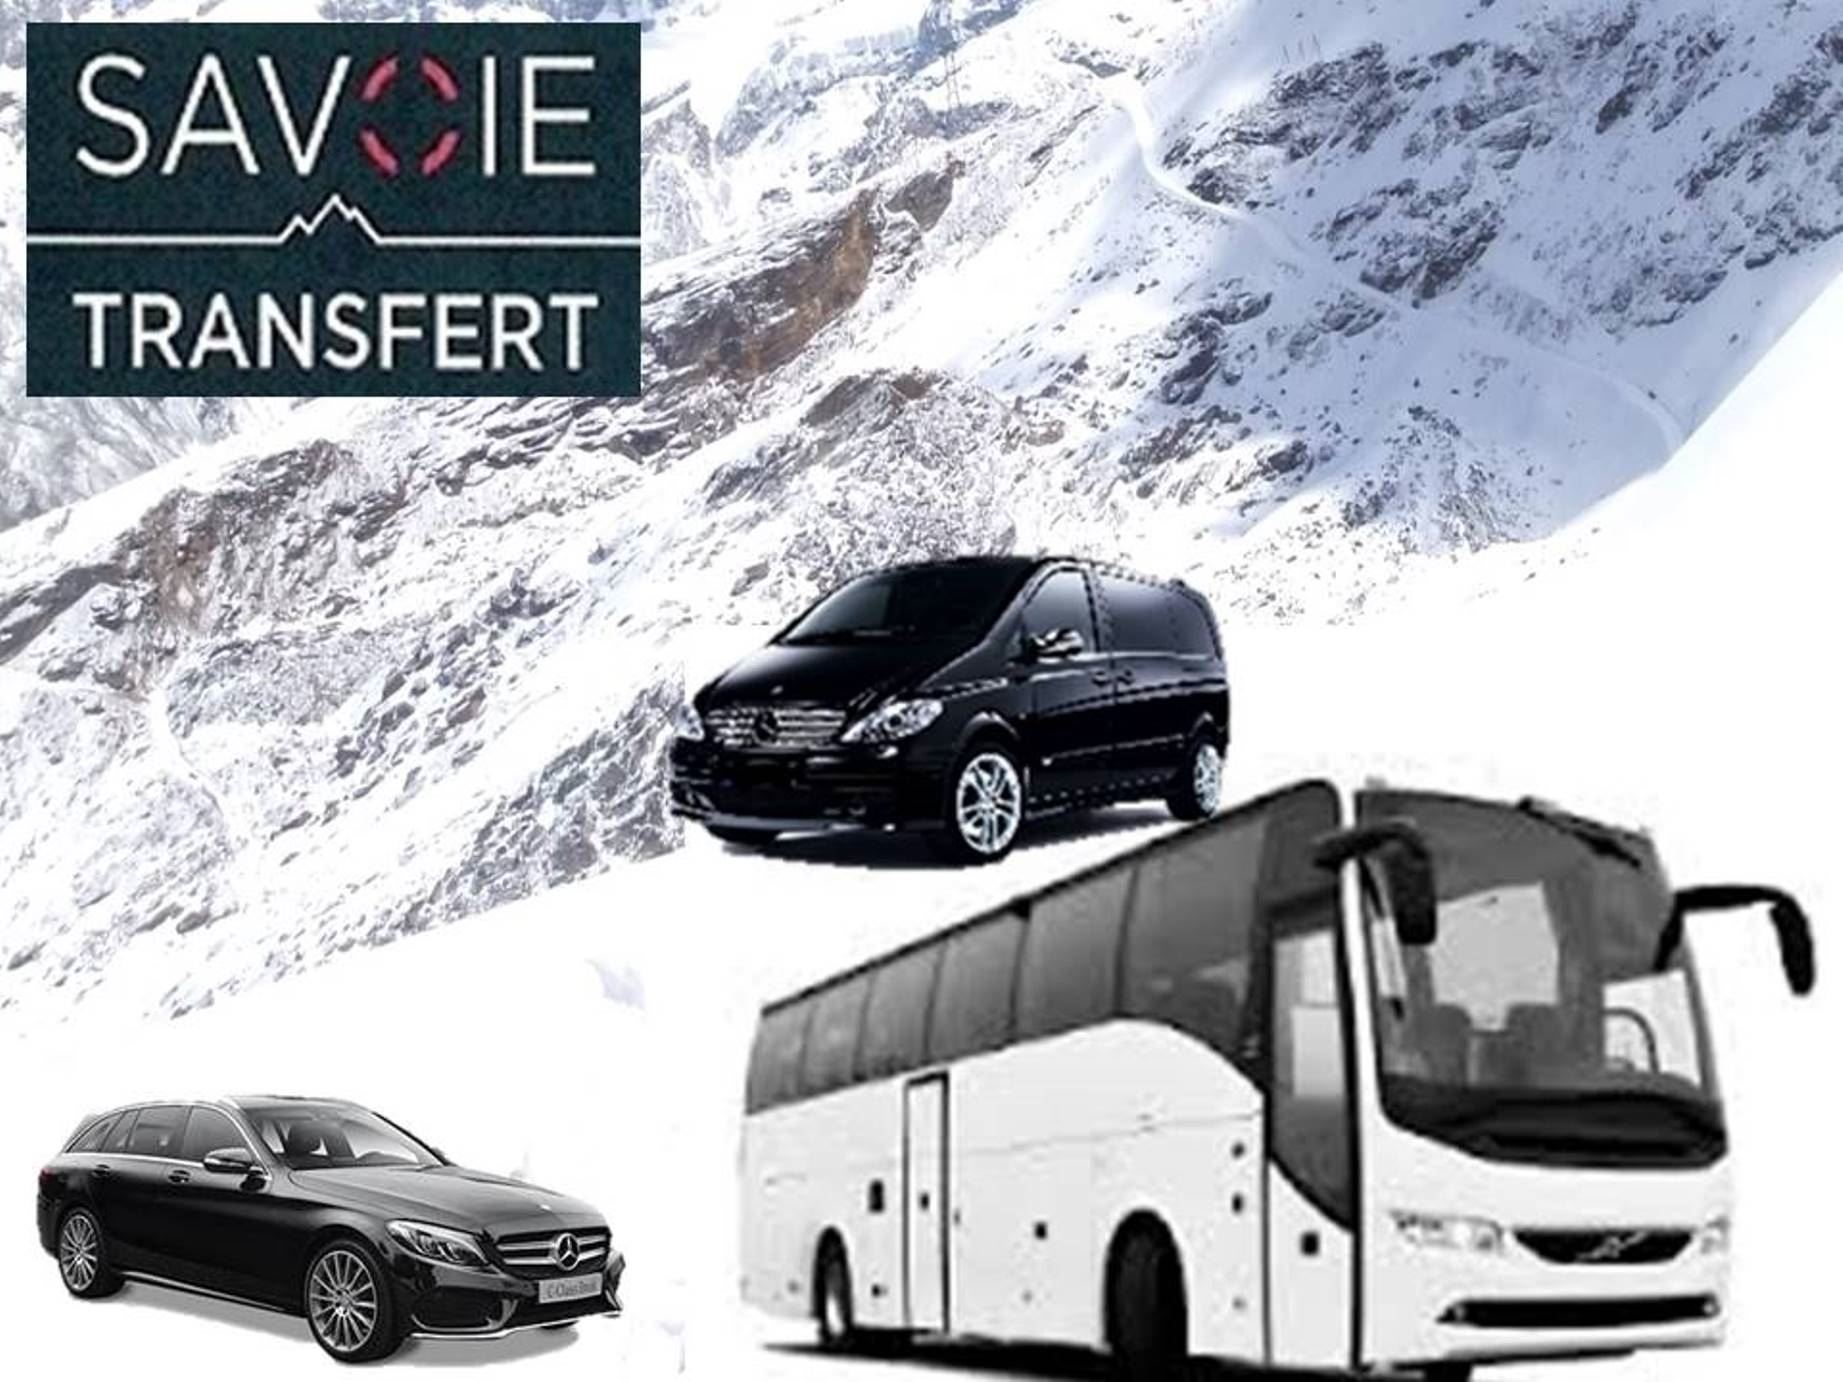 PRIVATE TRANSFER from CHAMBERY STATION ROUND TRIP with VAL THORENS TRANSFERT